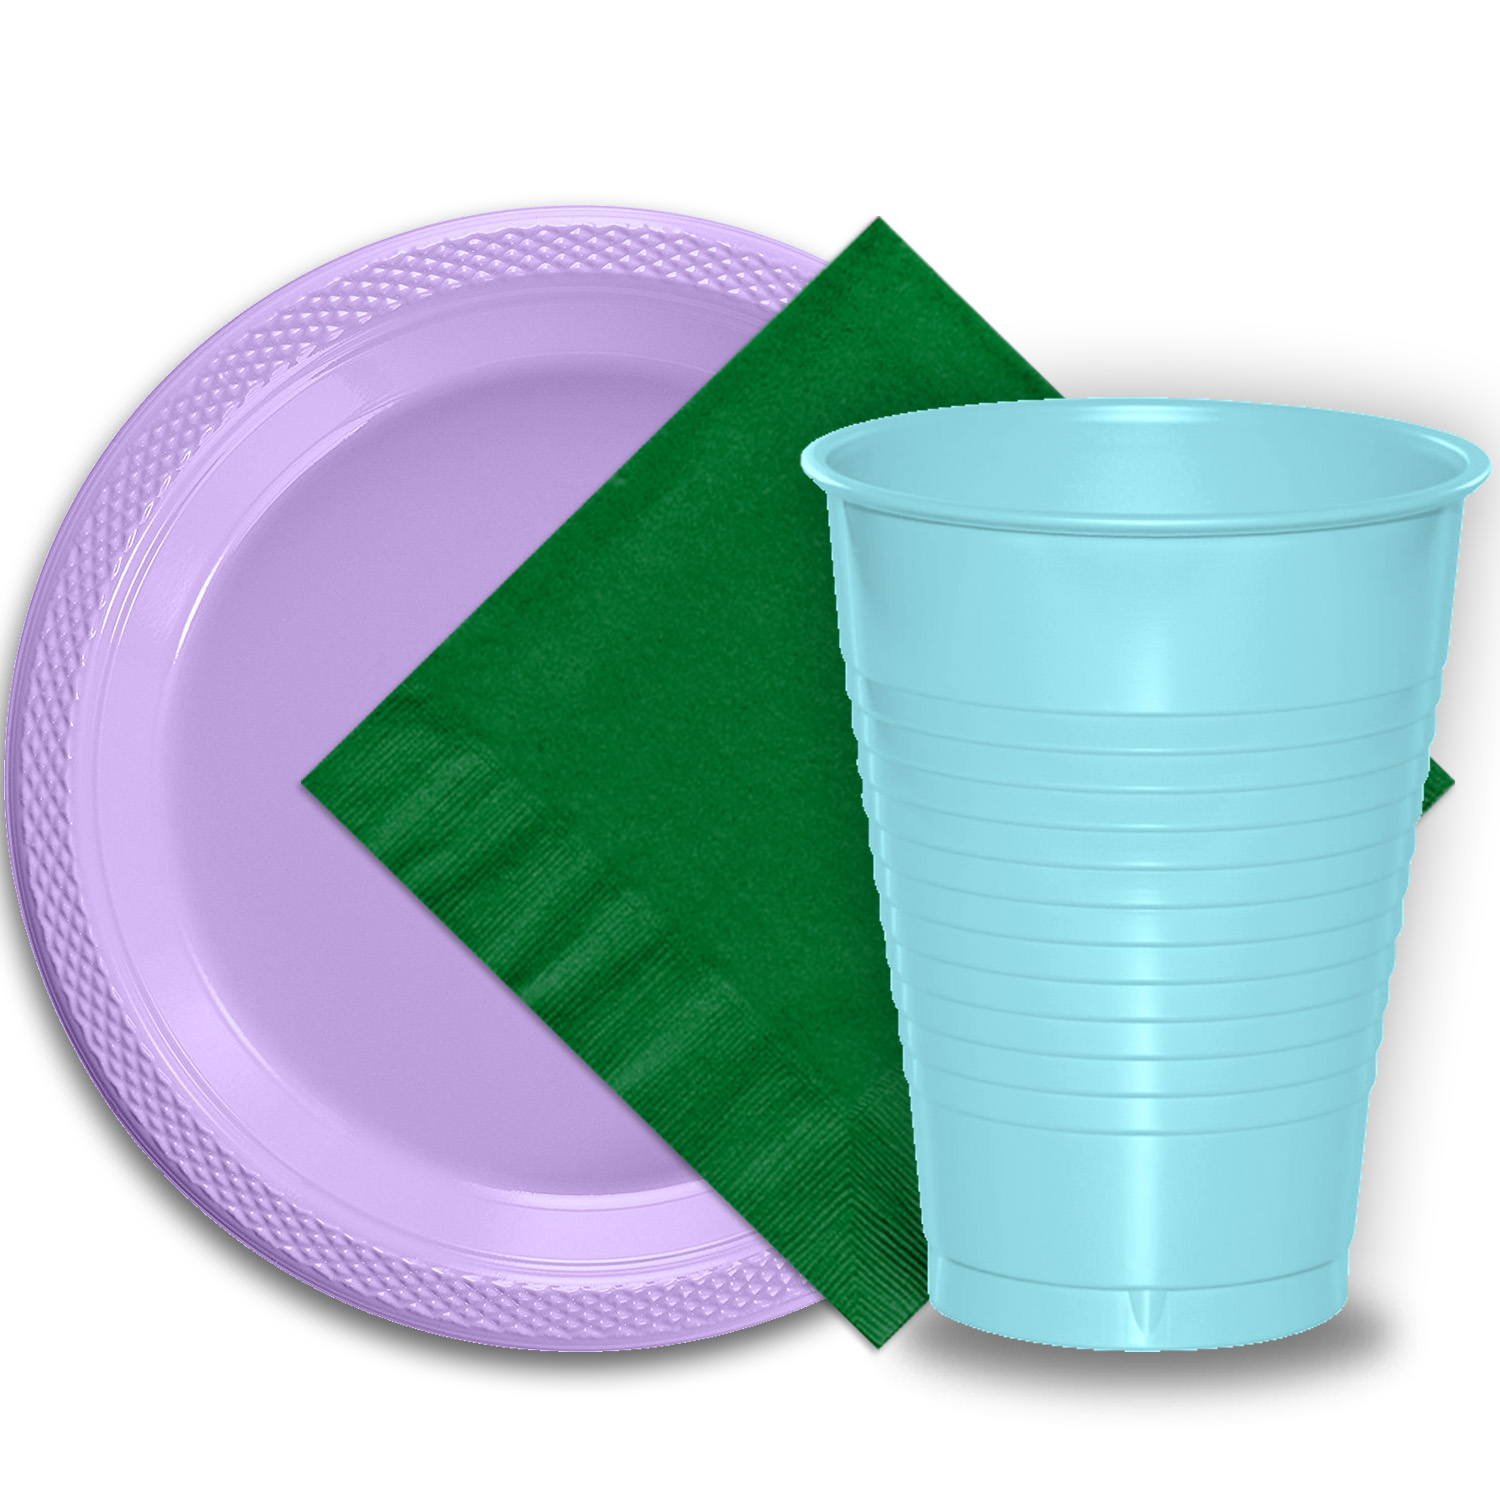 "50 Lavender Plastic Plates (9""), 50 Light Blue Plastic Cups (12 oz.), and 50 Emerald Green Paper Napkins, Dazzelling Colored Disposable Party Supplies Tableware Set for Fifty Guests."